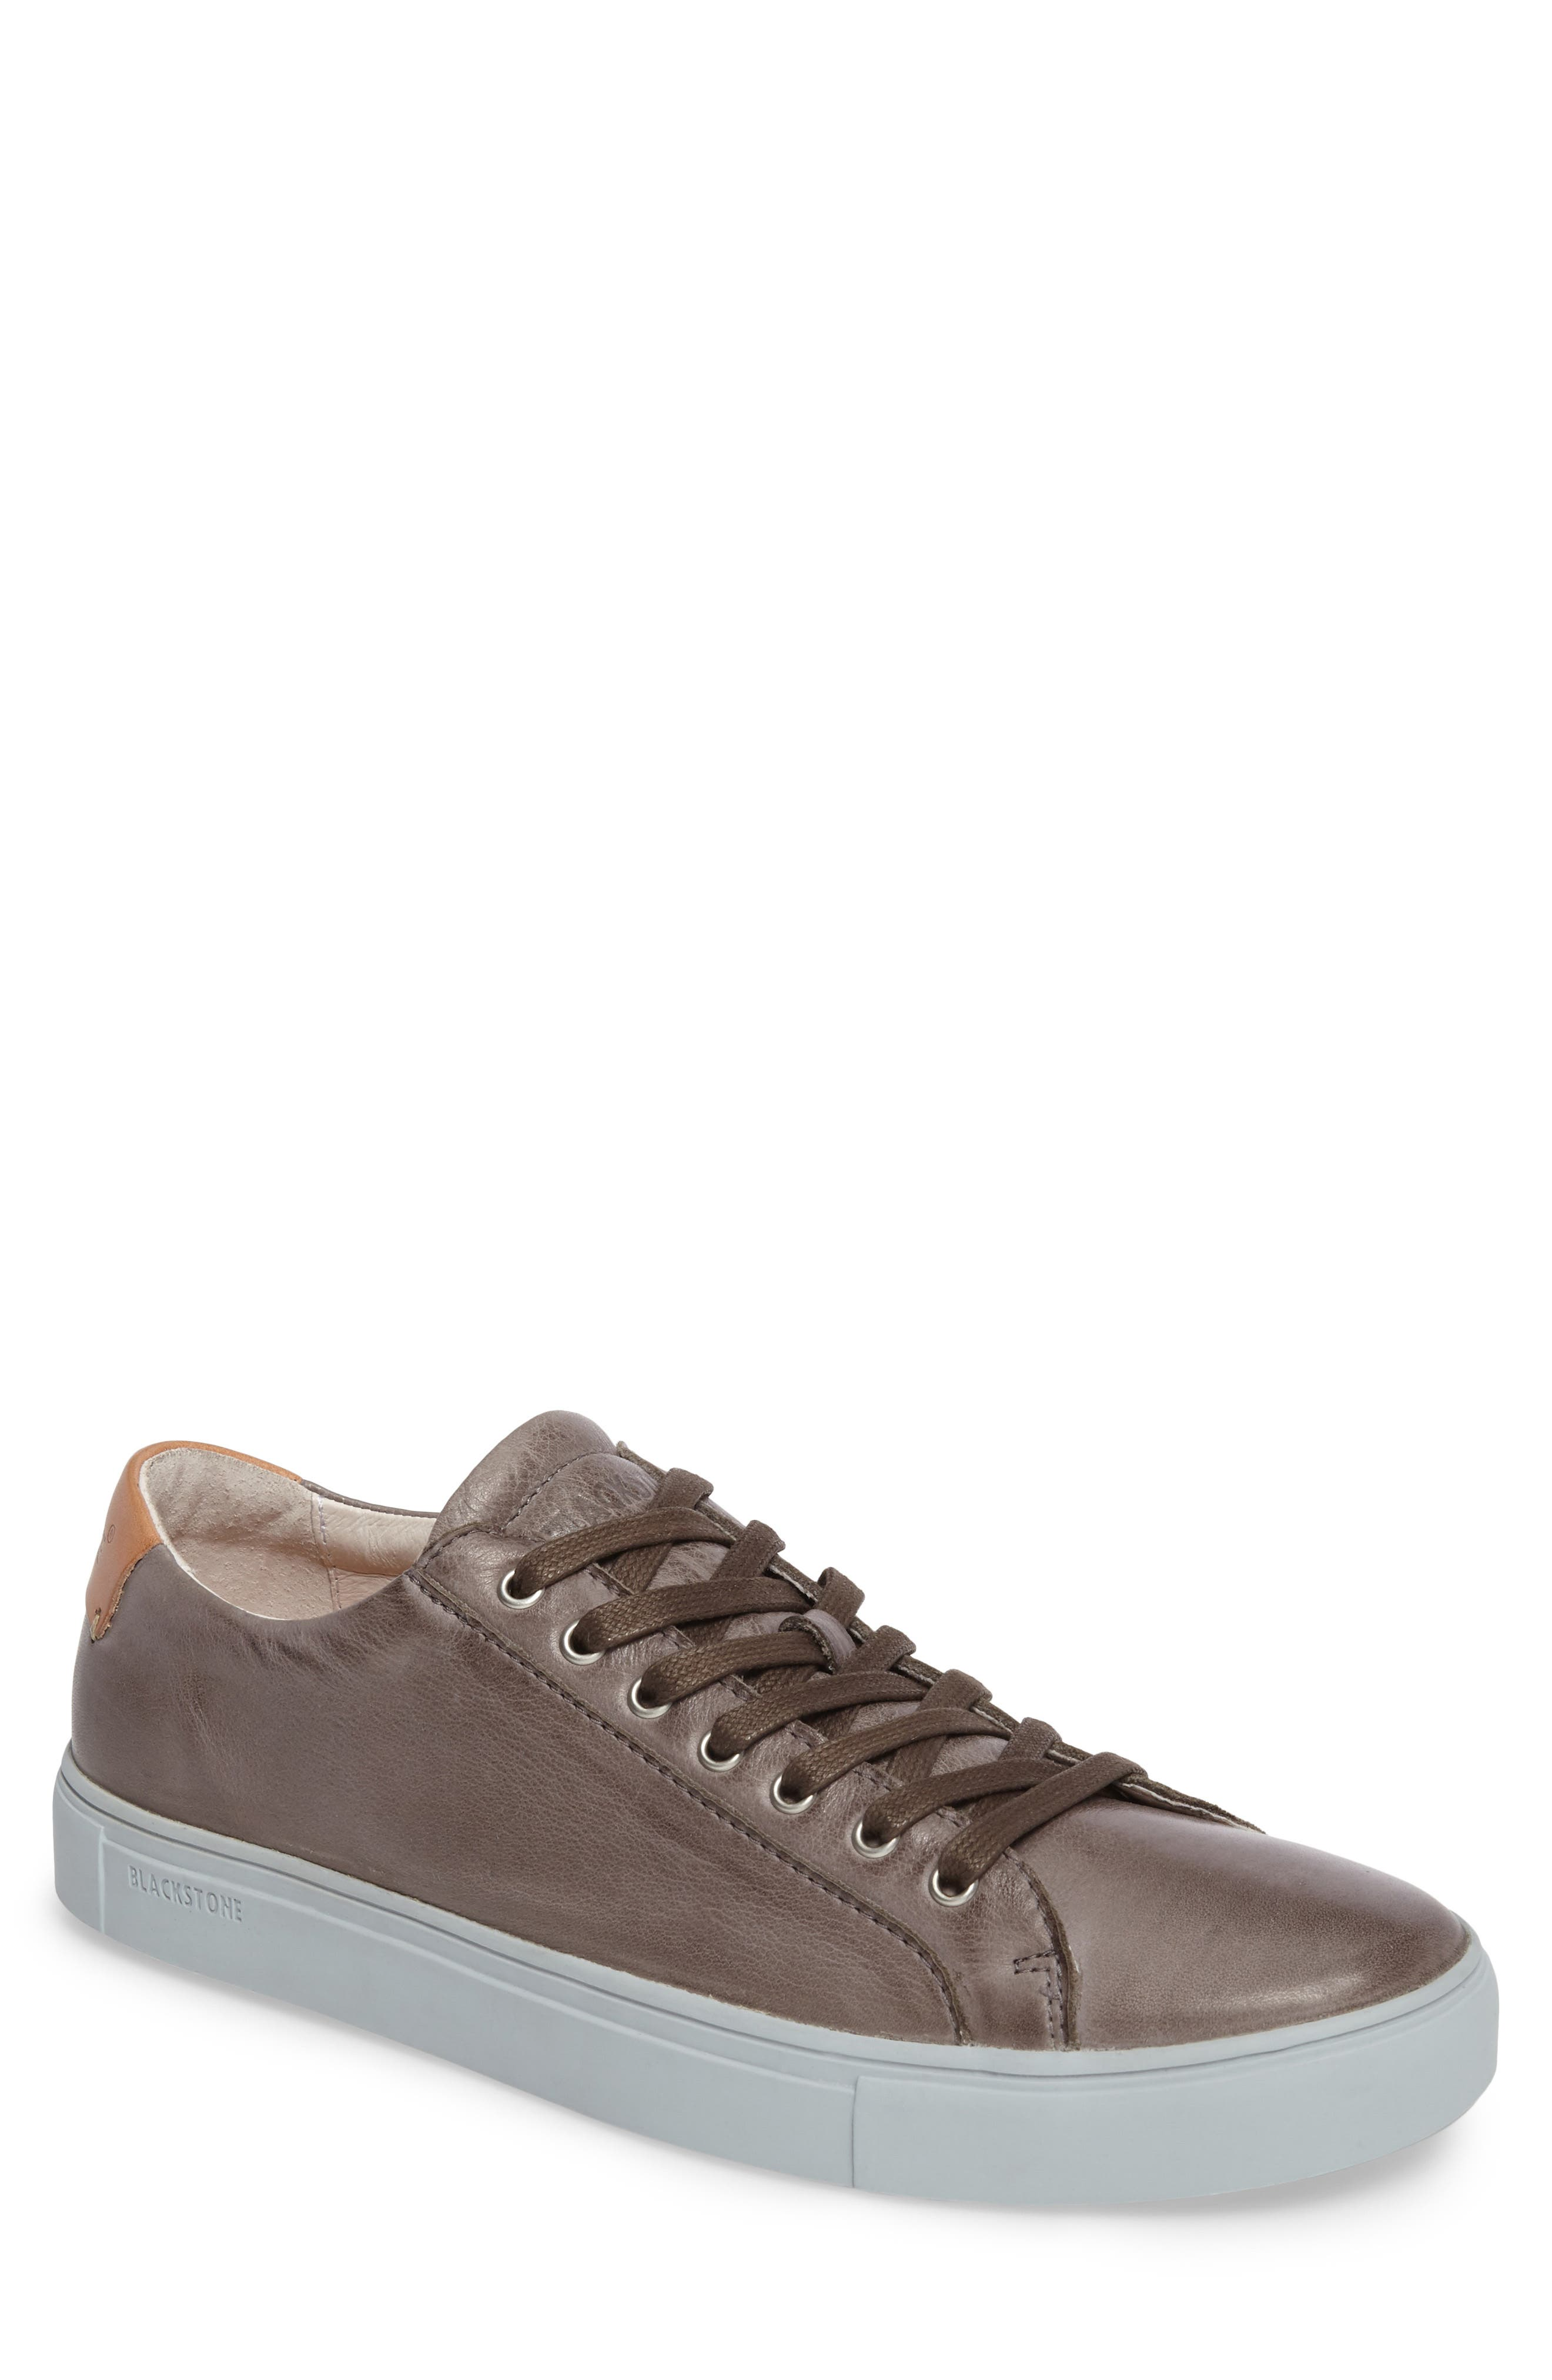 NM01 7 Eyelet Sneaker,                             Main thumbnail 1, color,                             Charcoal Leather